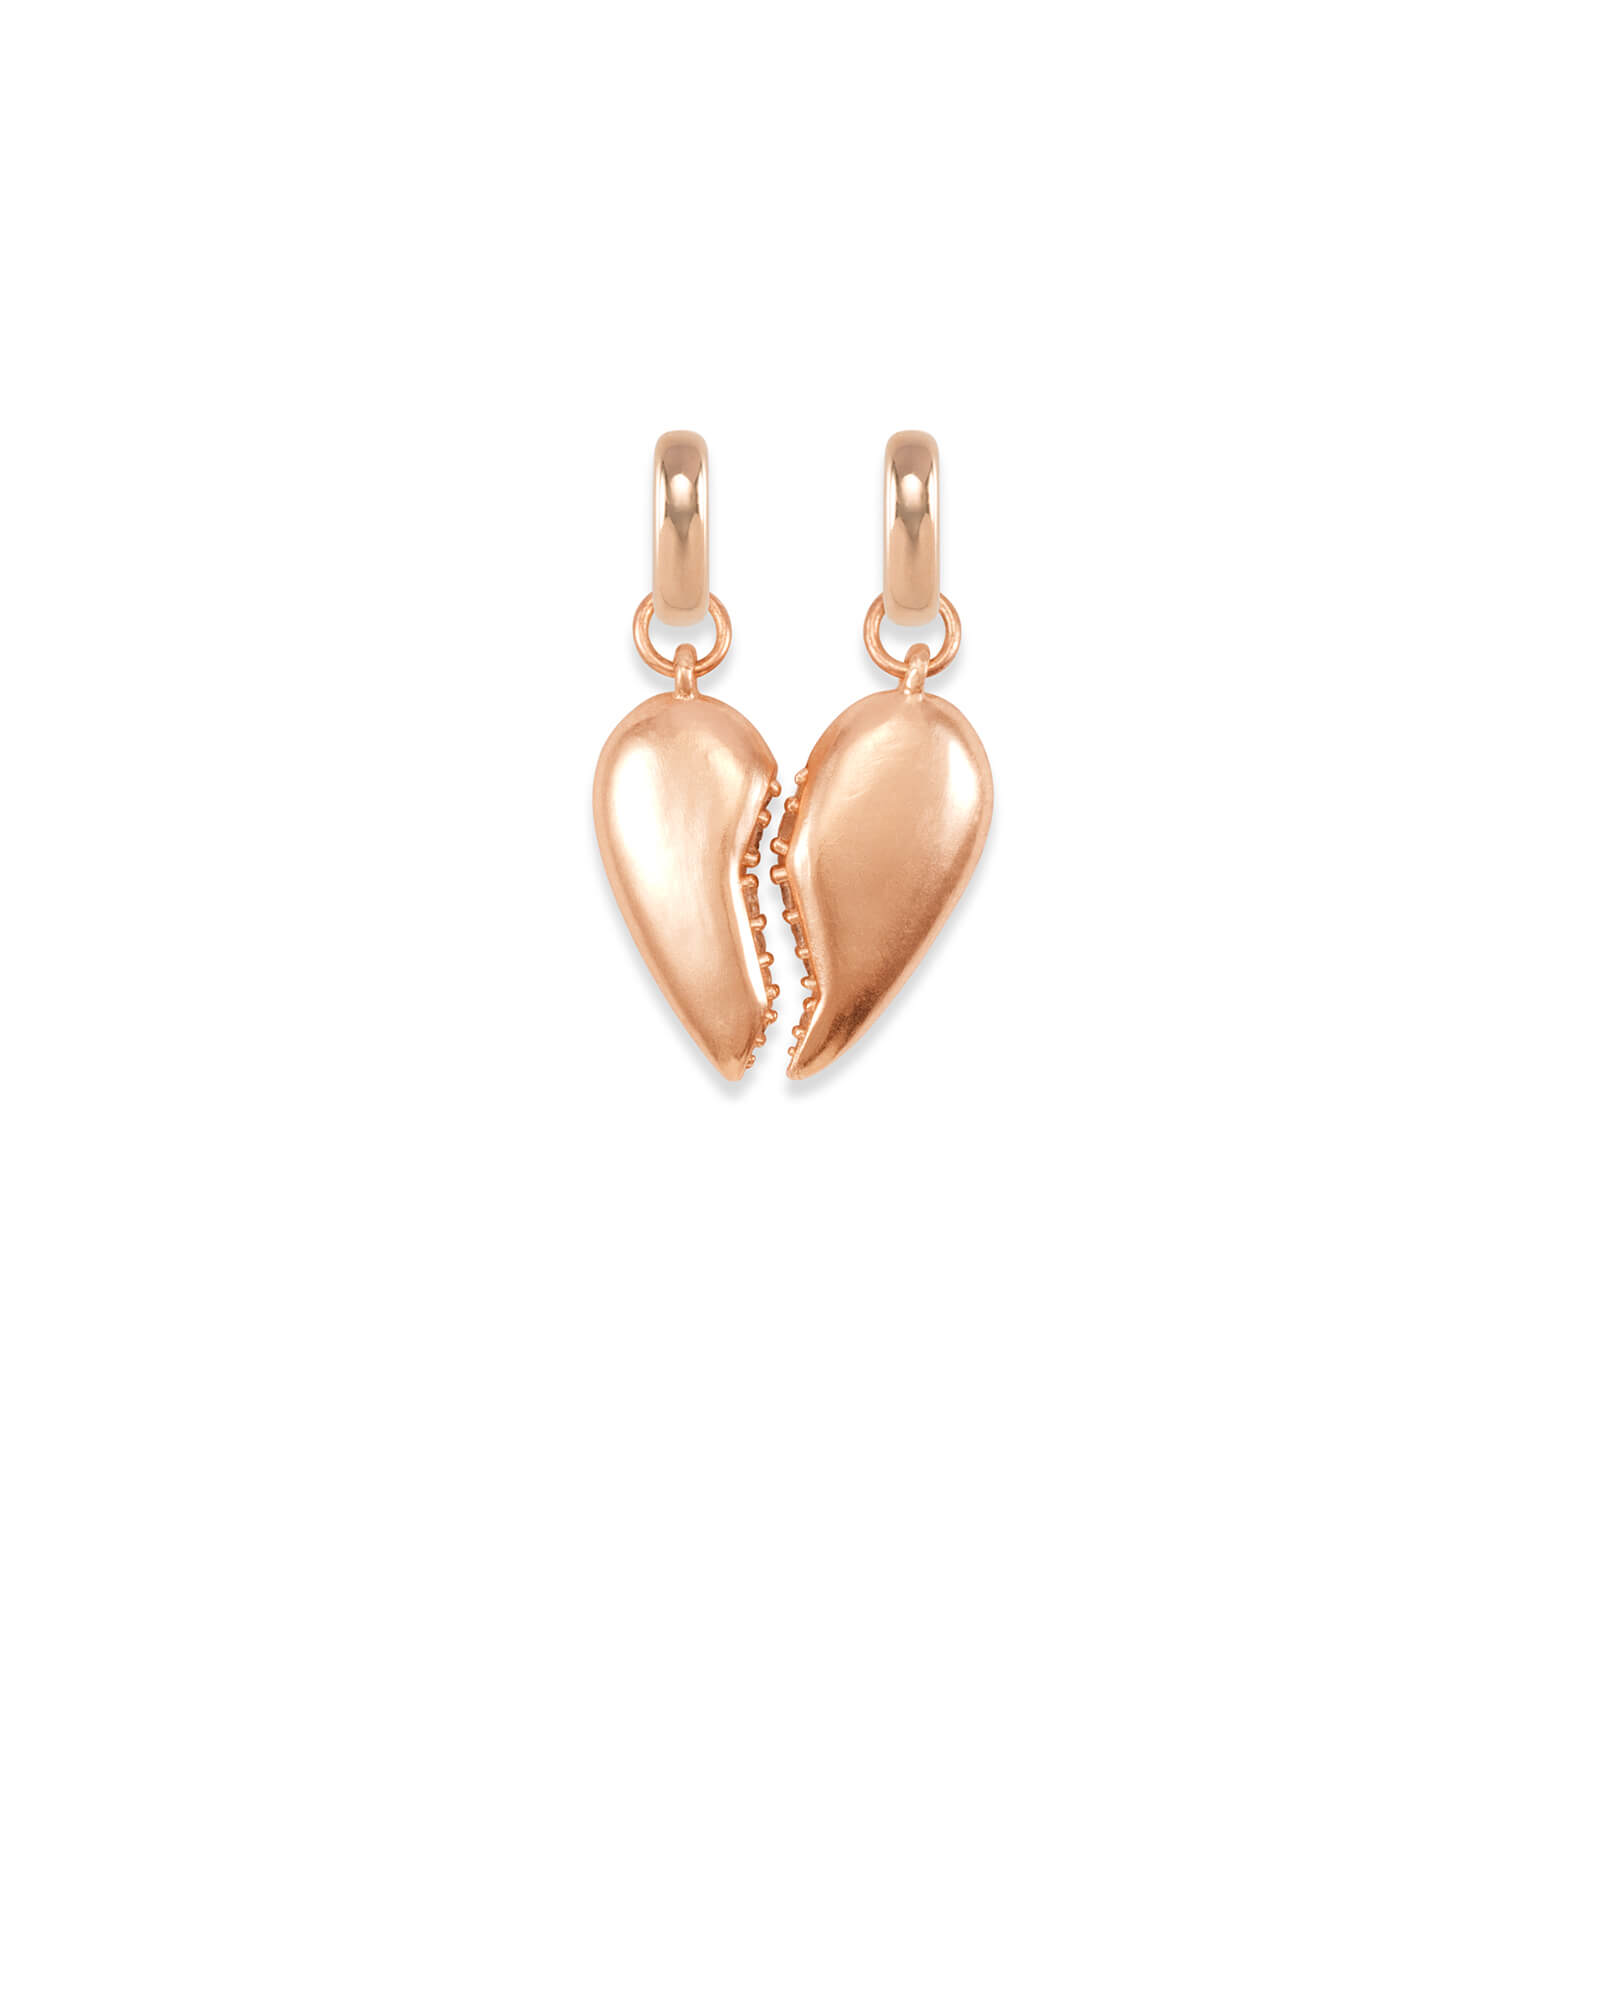 Best Friend Charm Set in Rose Gold